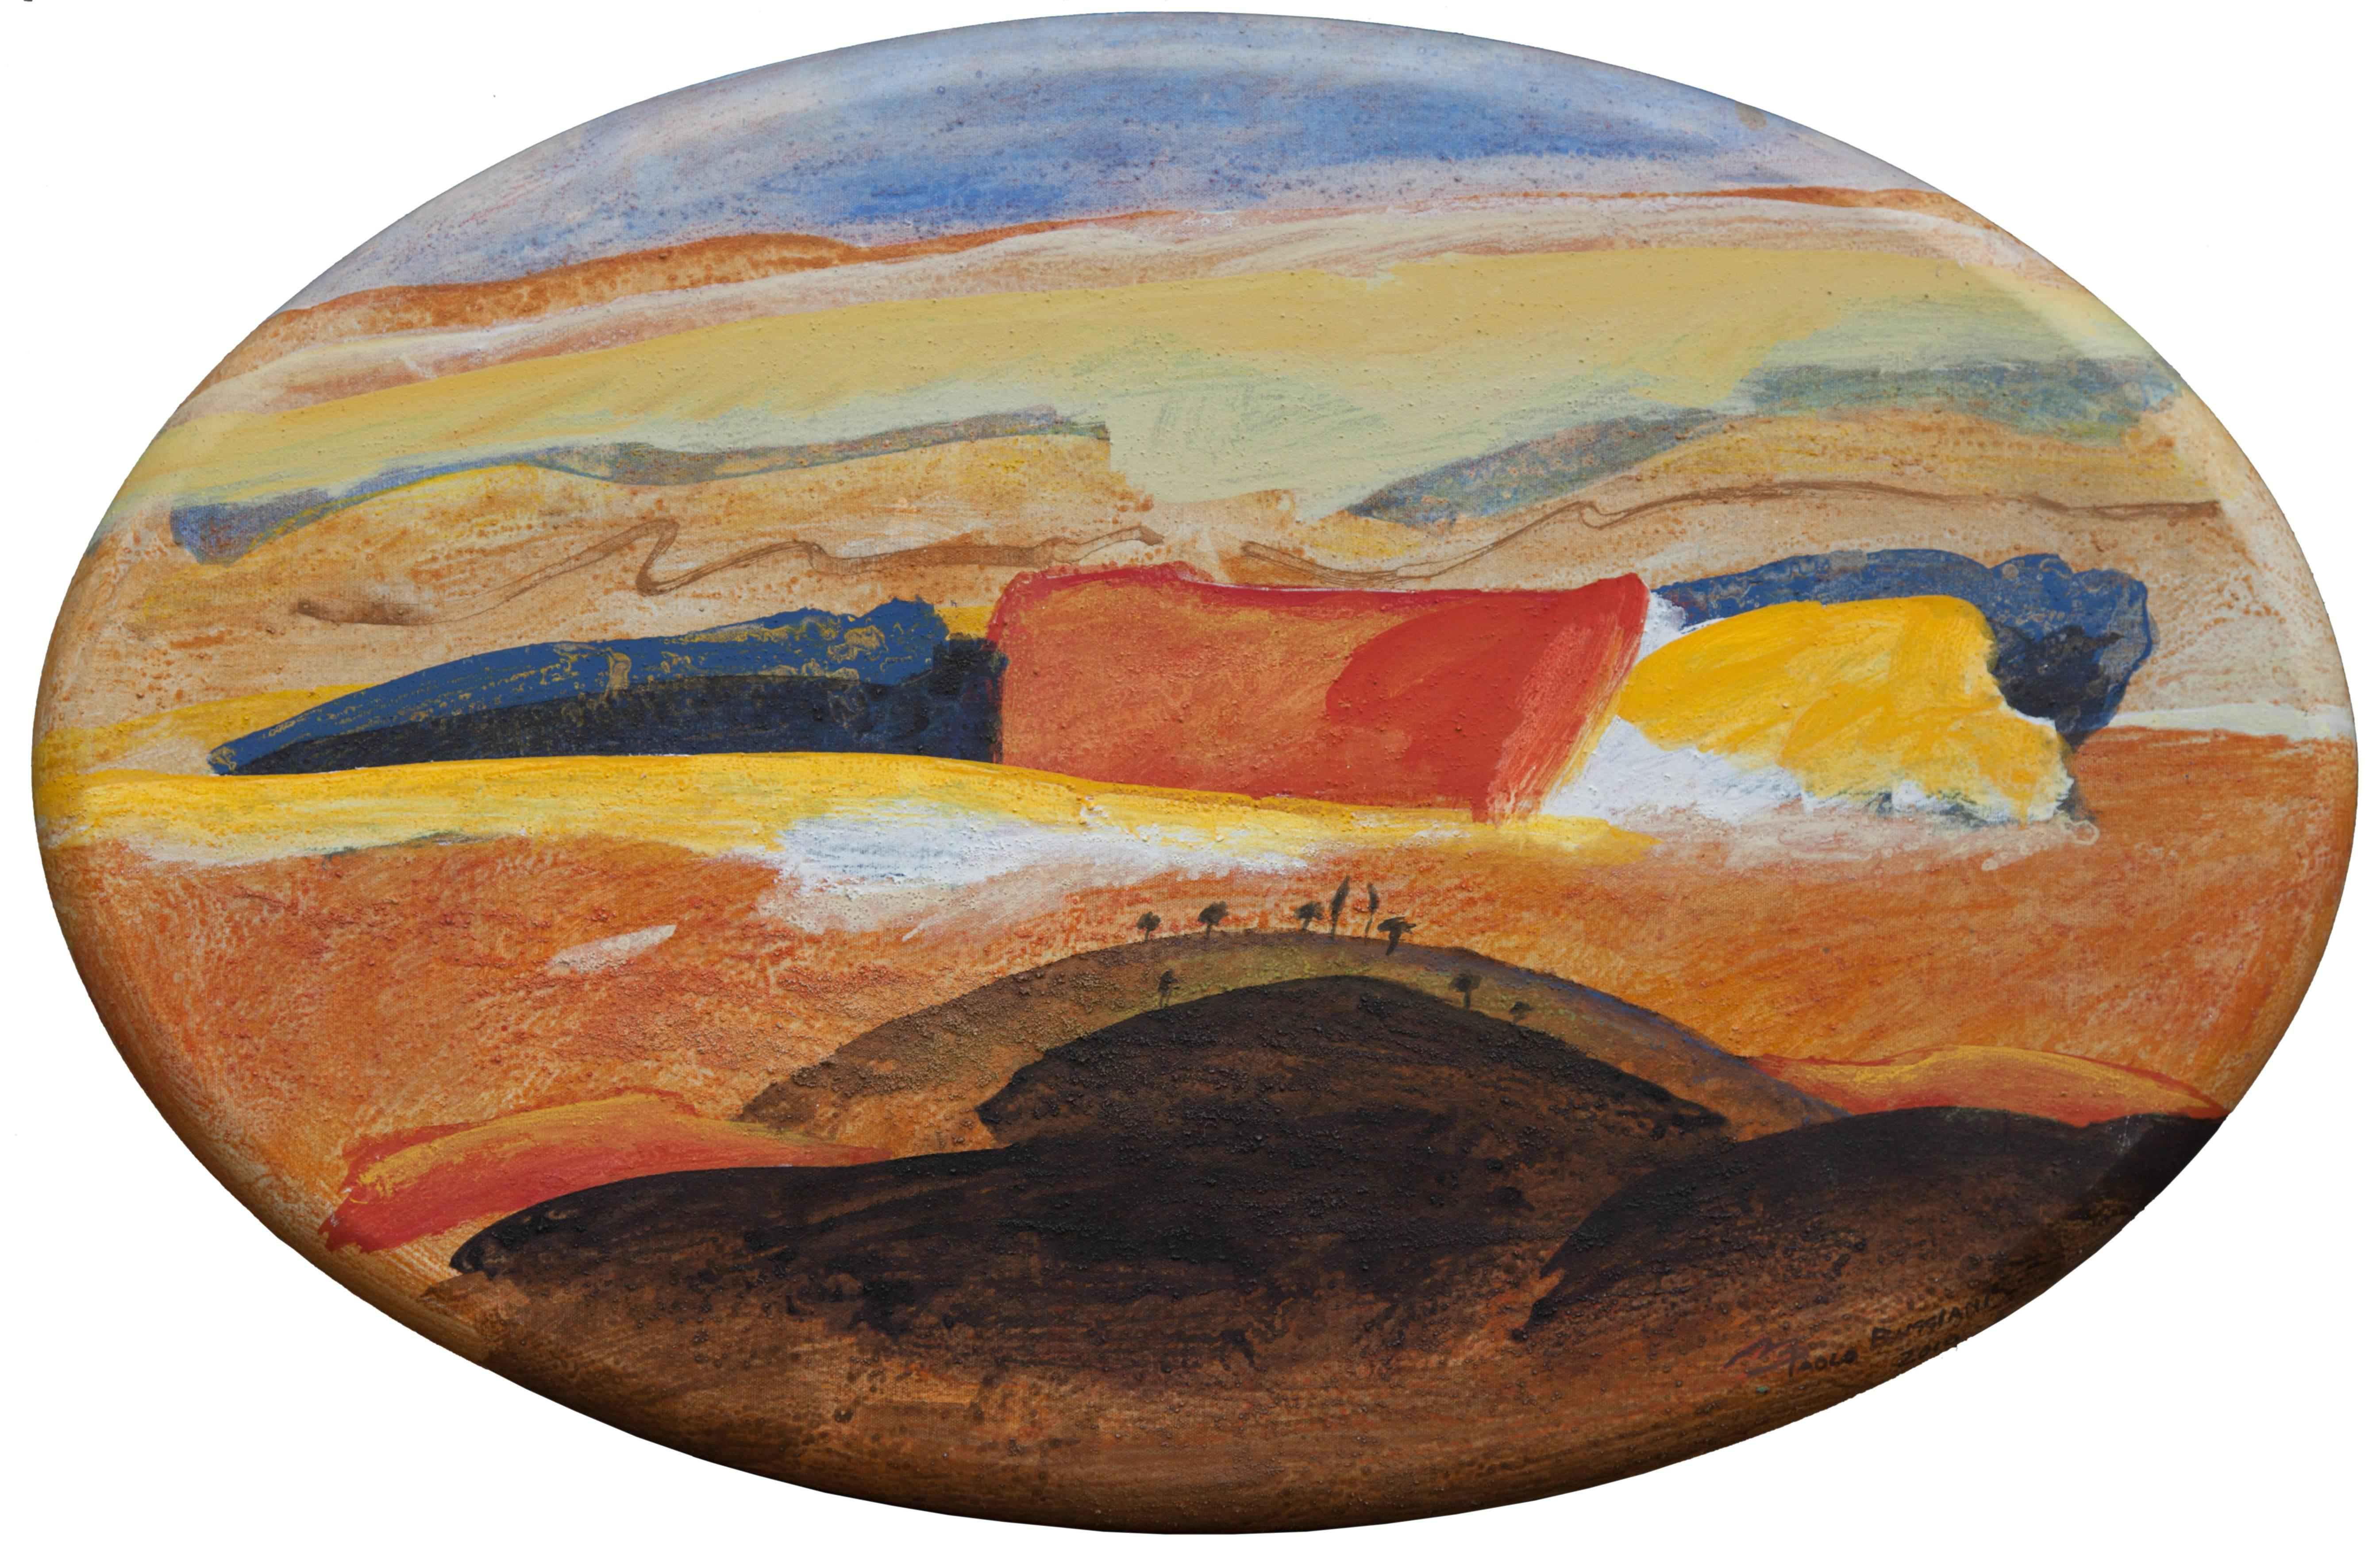 Tuscany, Italian Landscape - Oval Oil Painting of Countryside in Tuscany